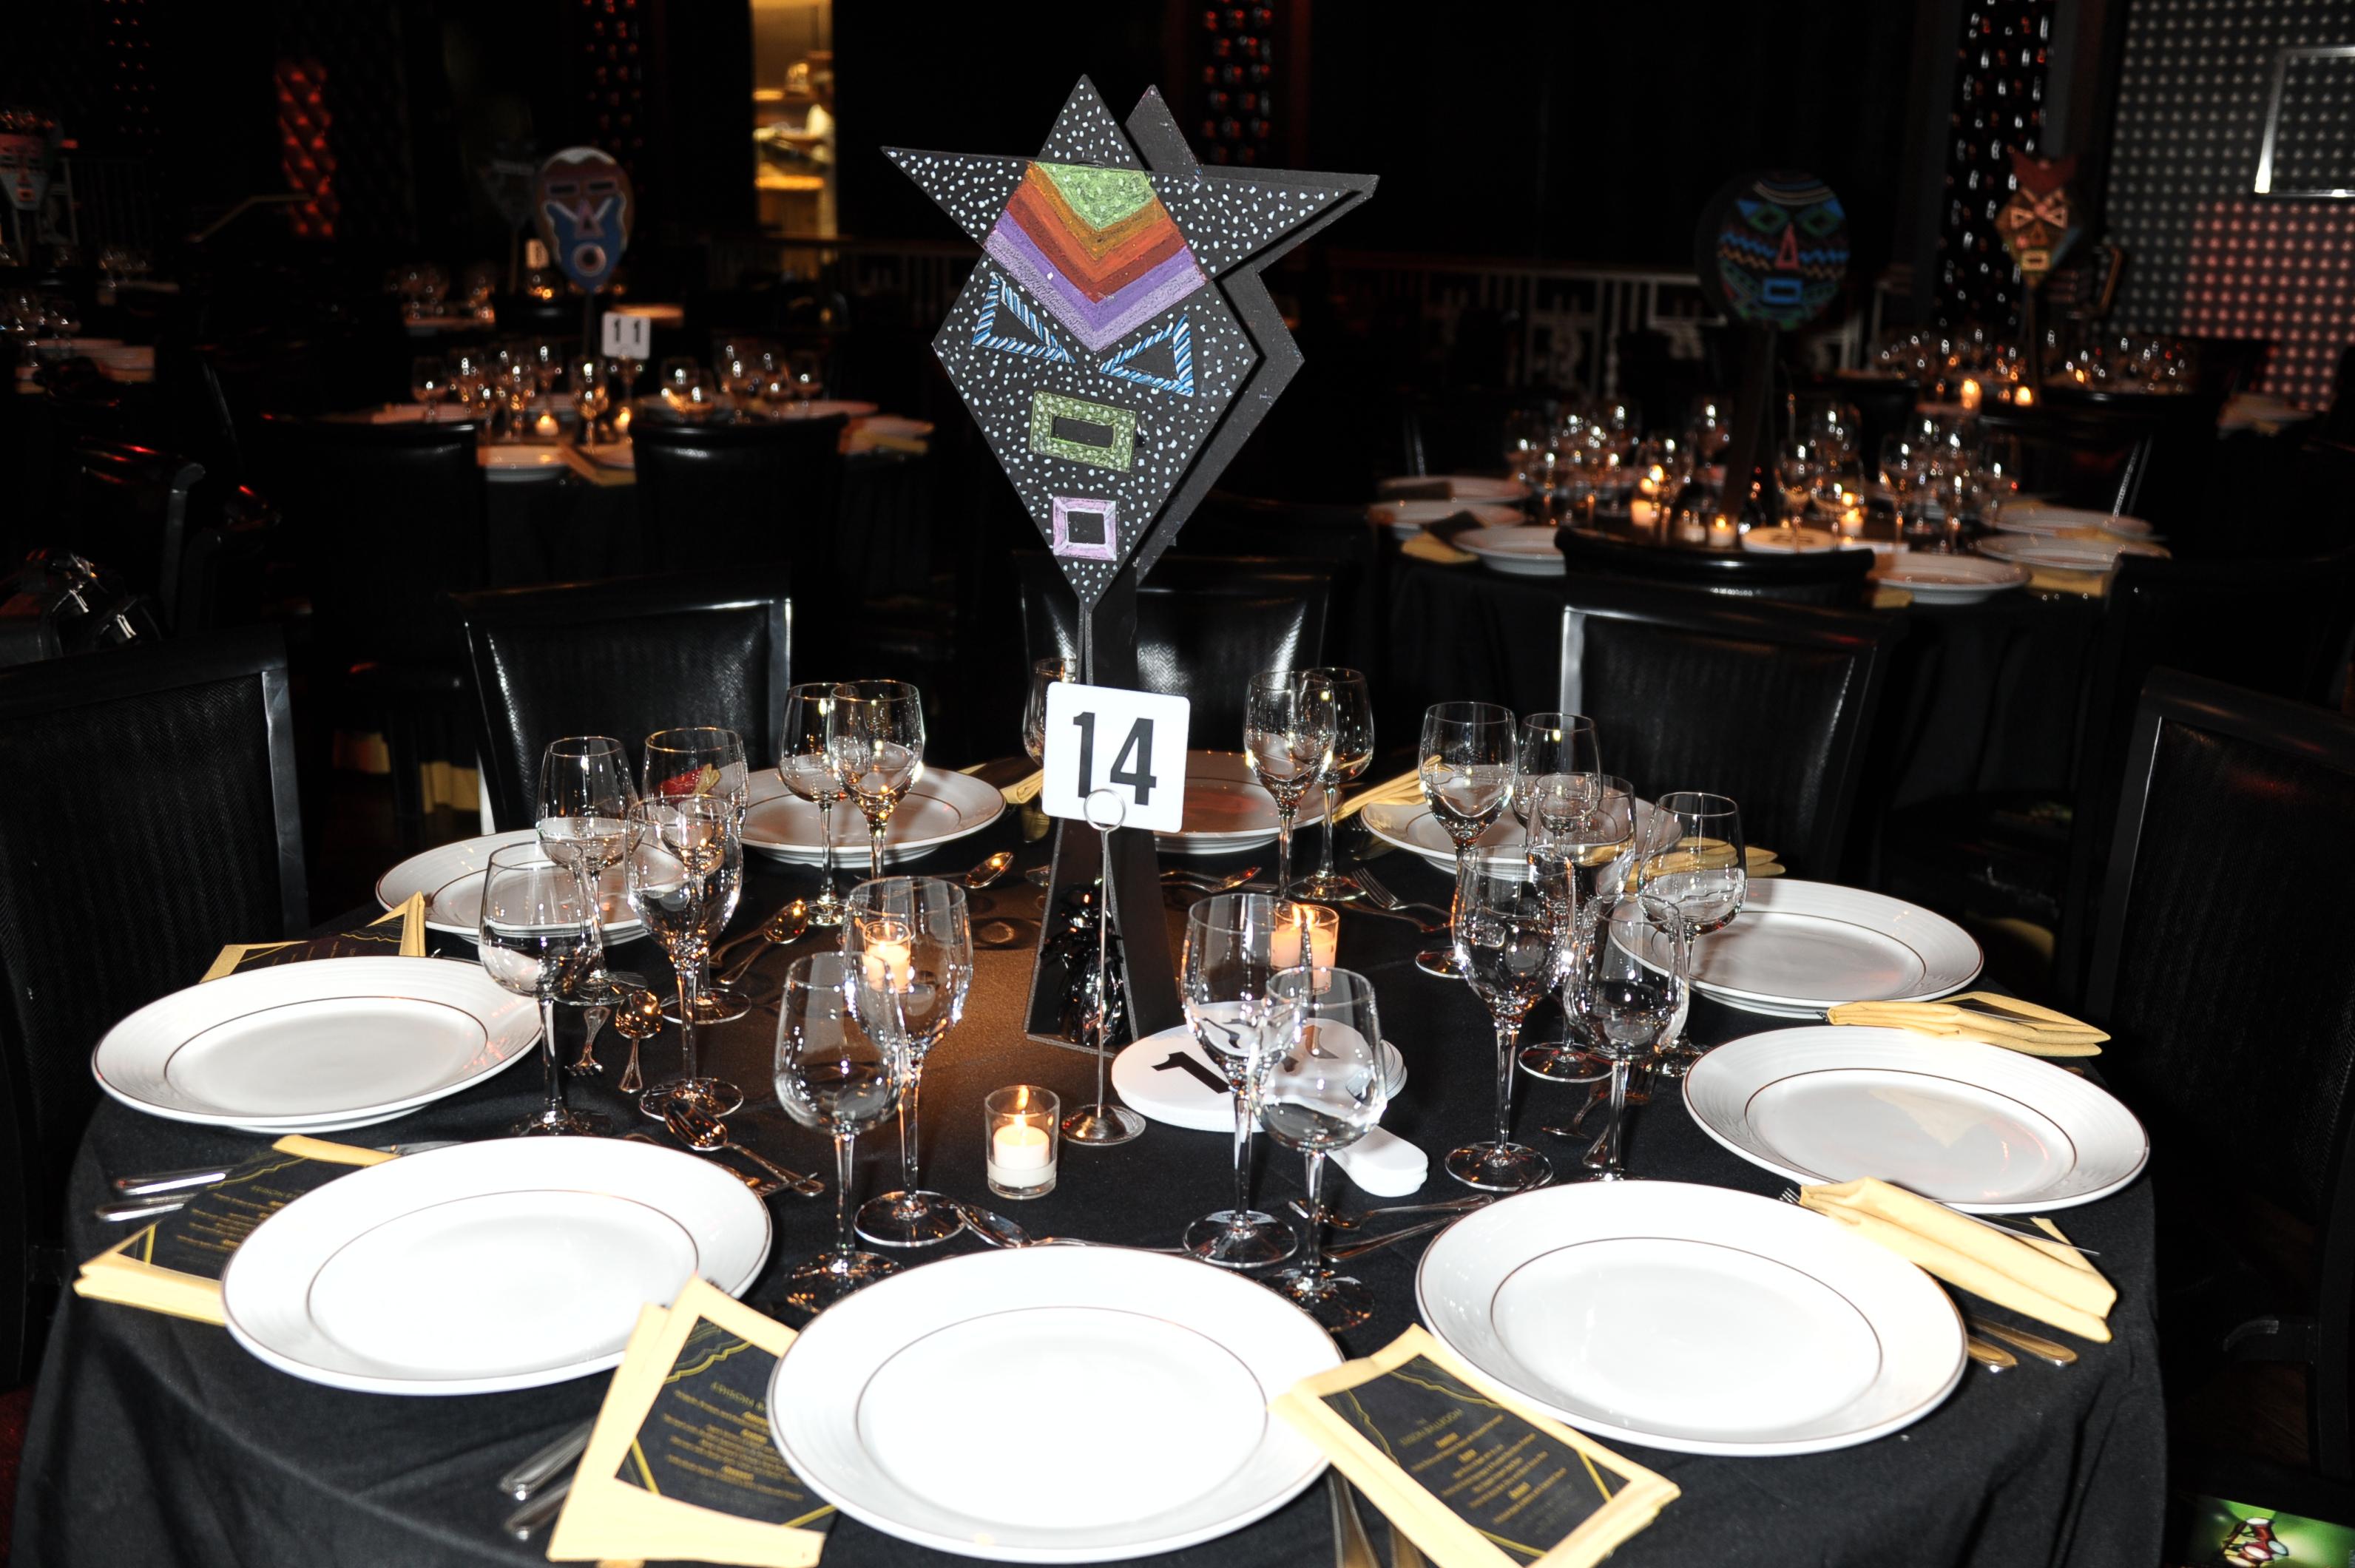 Featured On The Tables As Centerpieces At Our 2011 Annual Gala Were African Inspired  Masks. The Unique Masks Not Only Added Something Special To The Event ...